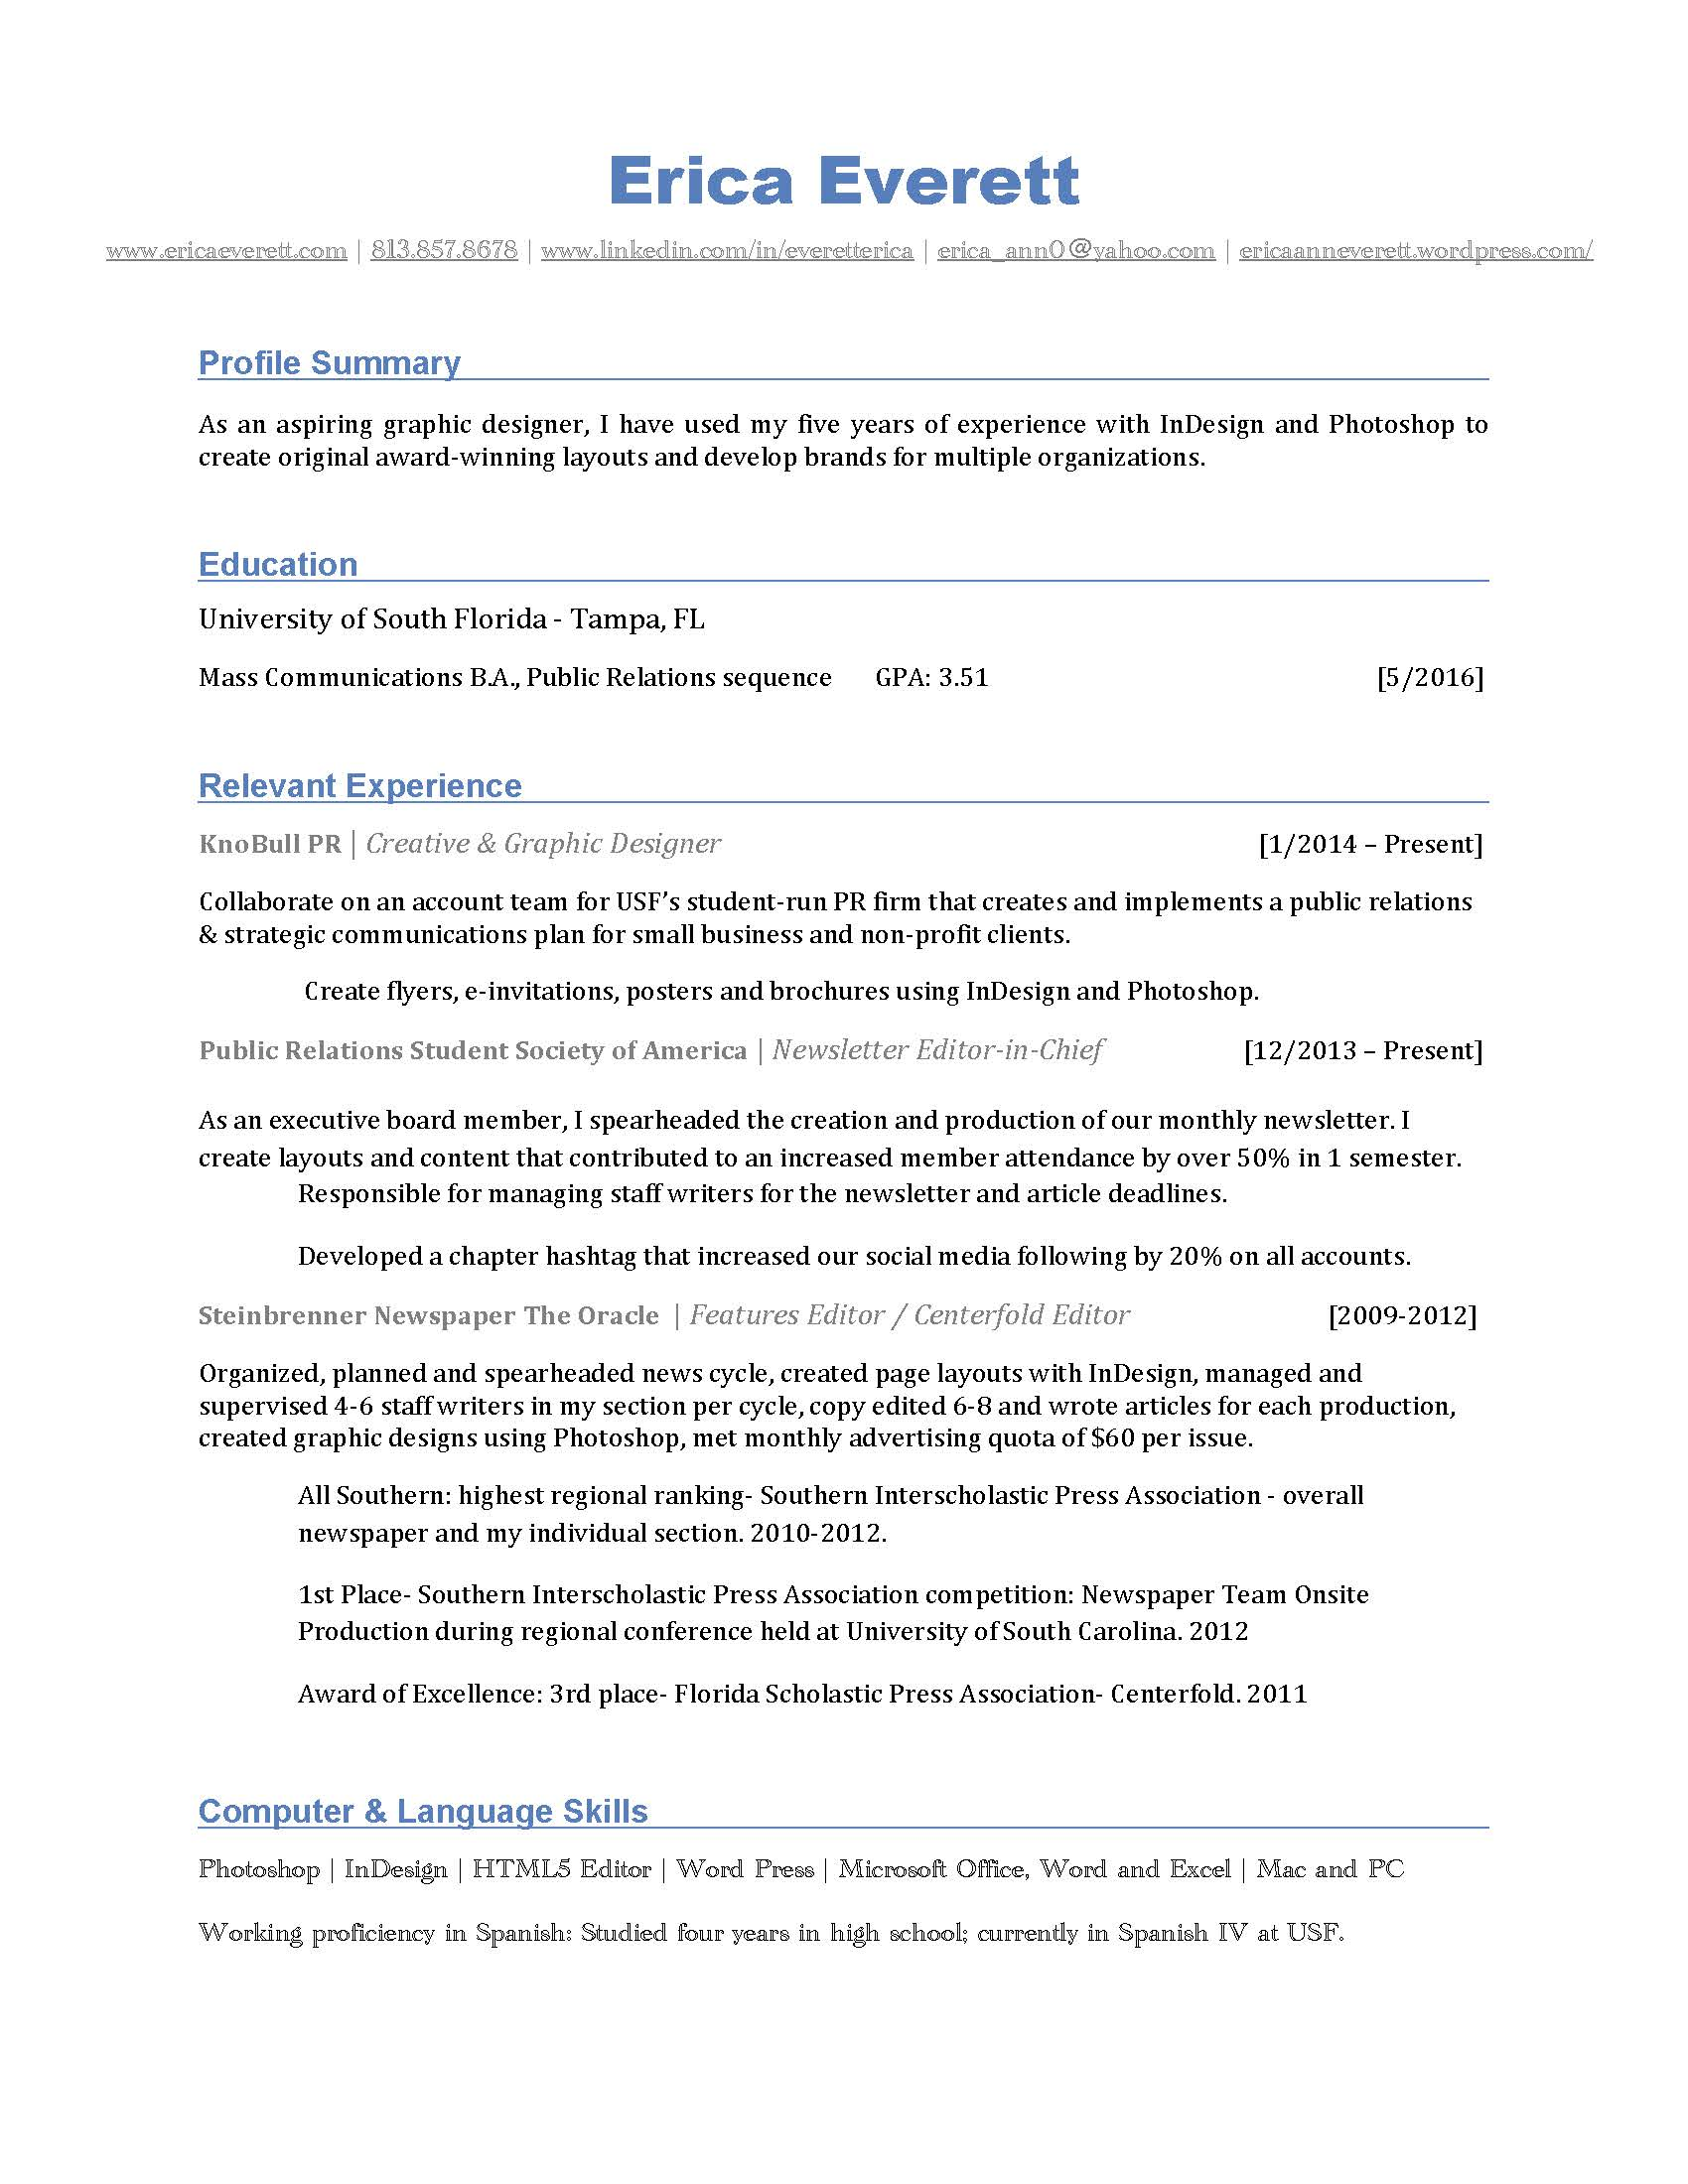 GPA on resume example